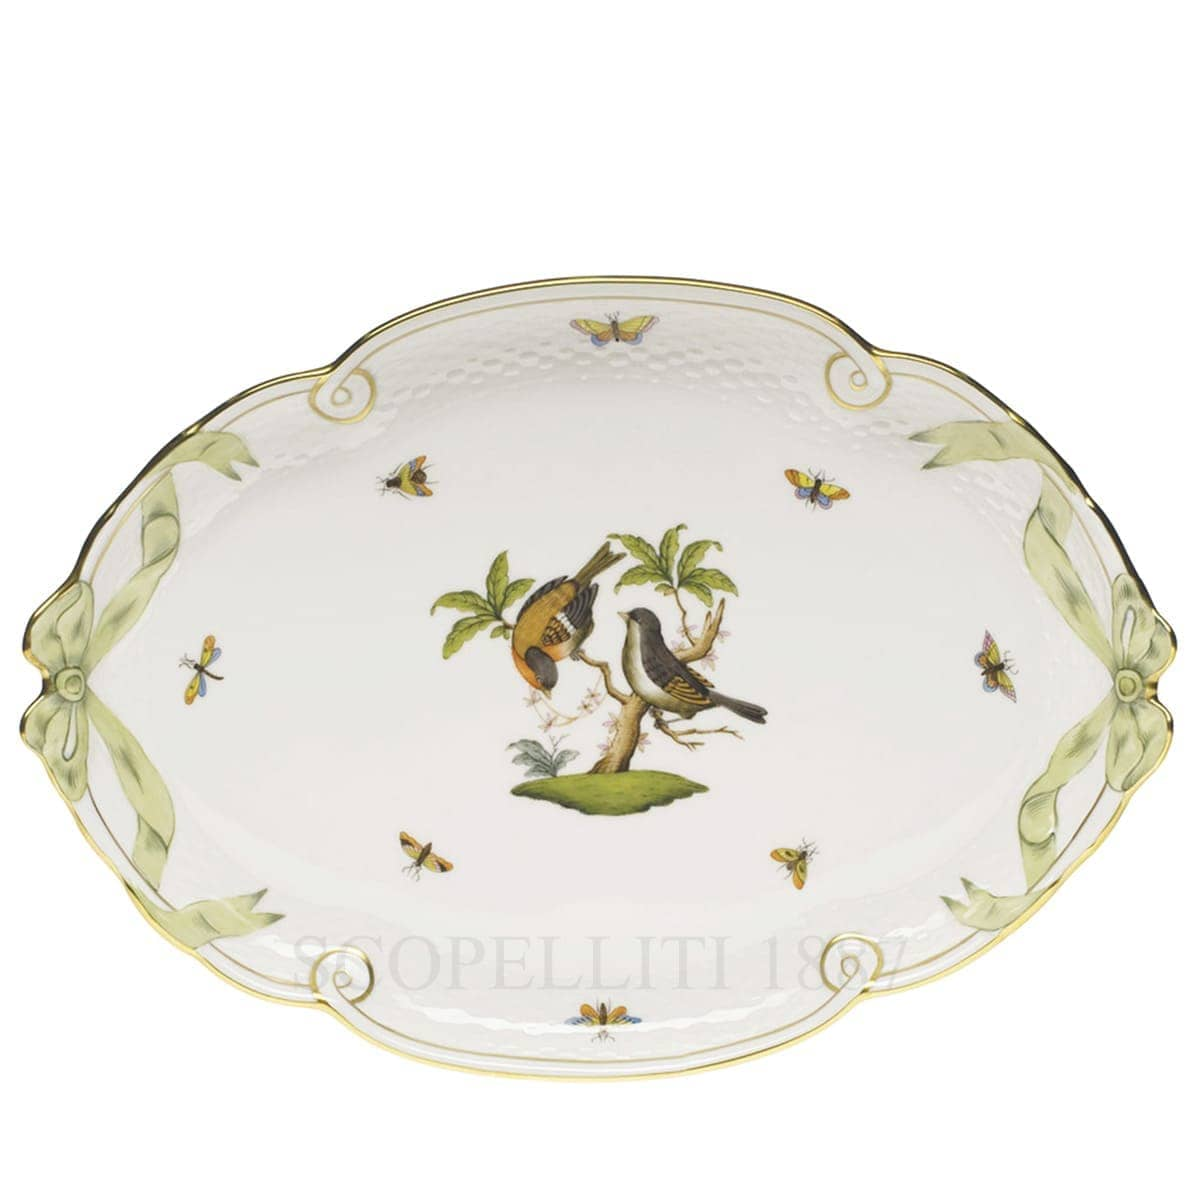 herend porcelain rothschild oval tray